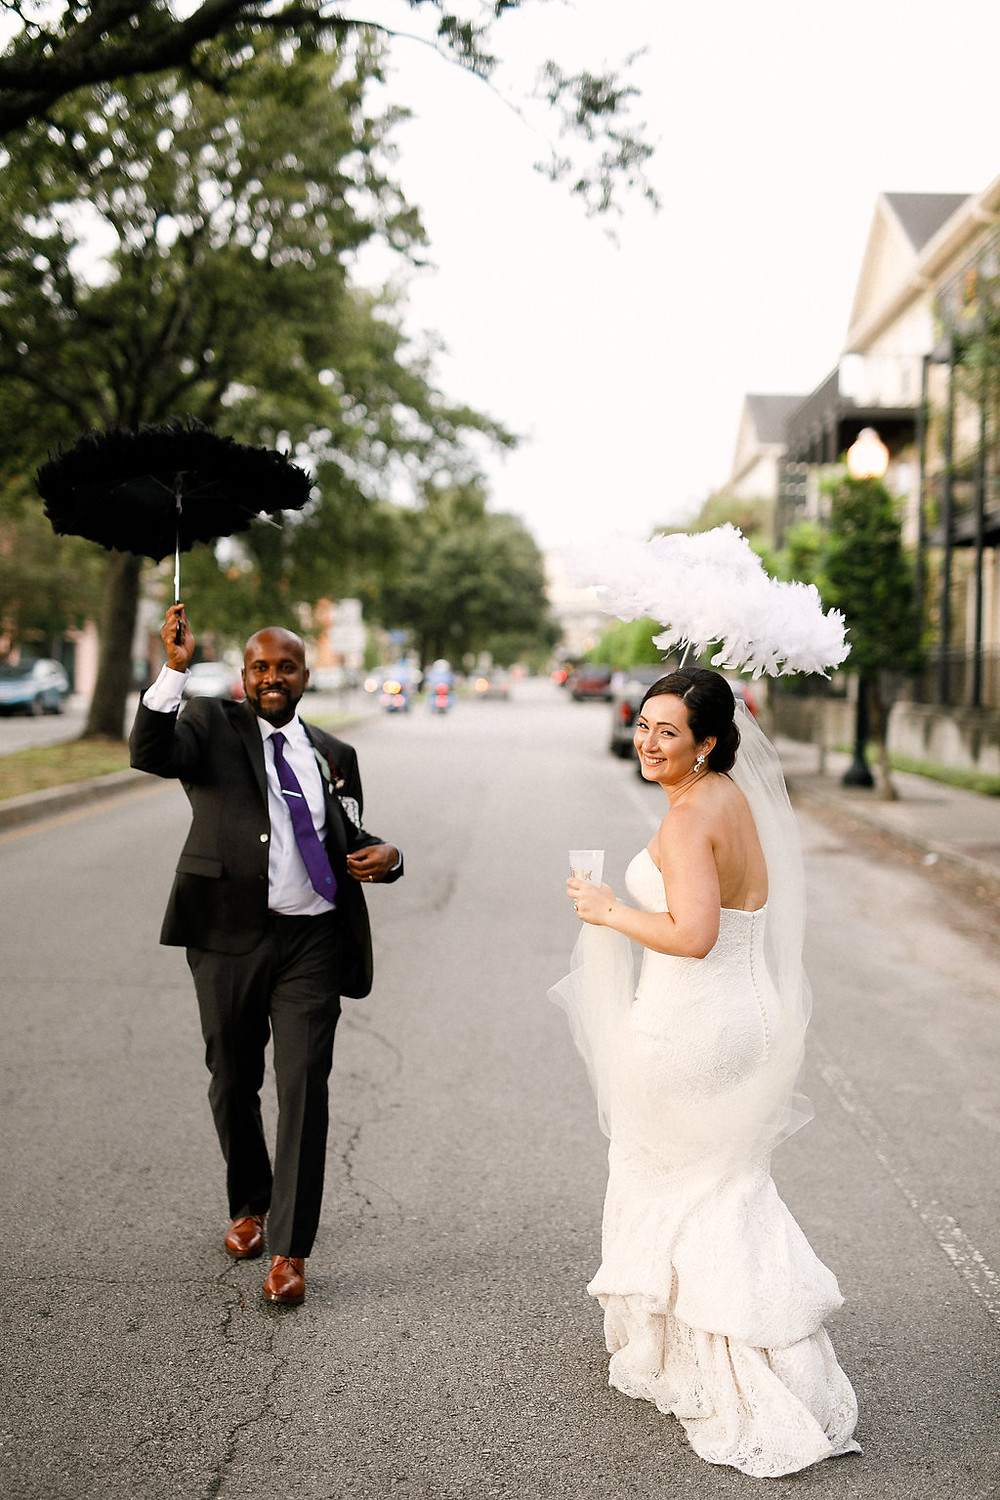 New Orleans Wedding with Ruby and Pearl Events, Kaylynn Marie Photography, Antigua Florals + Styling, Lovegood Wedding & Event Rentals , Kinfolk Brass Band at Race & Religious / Vintage Decor, Lounge Space, and Classic Farm Tables